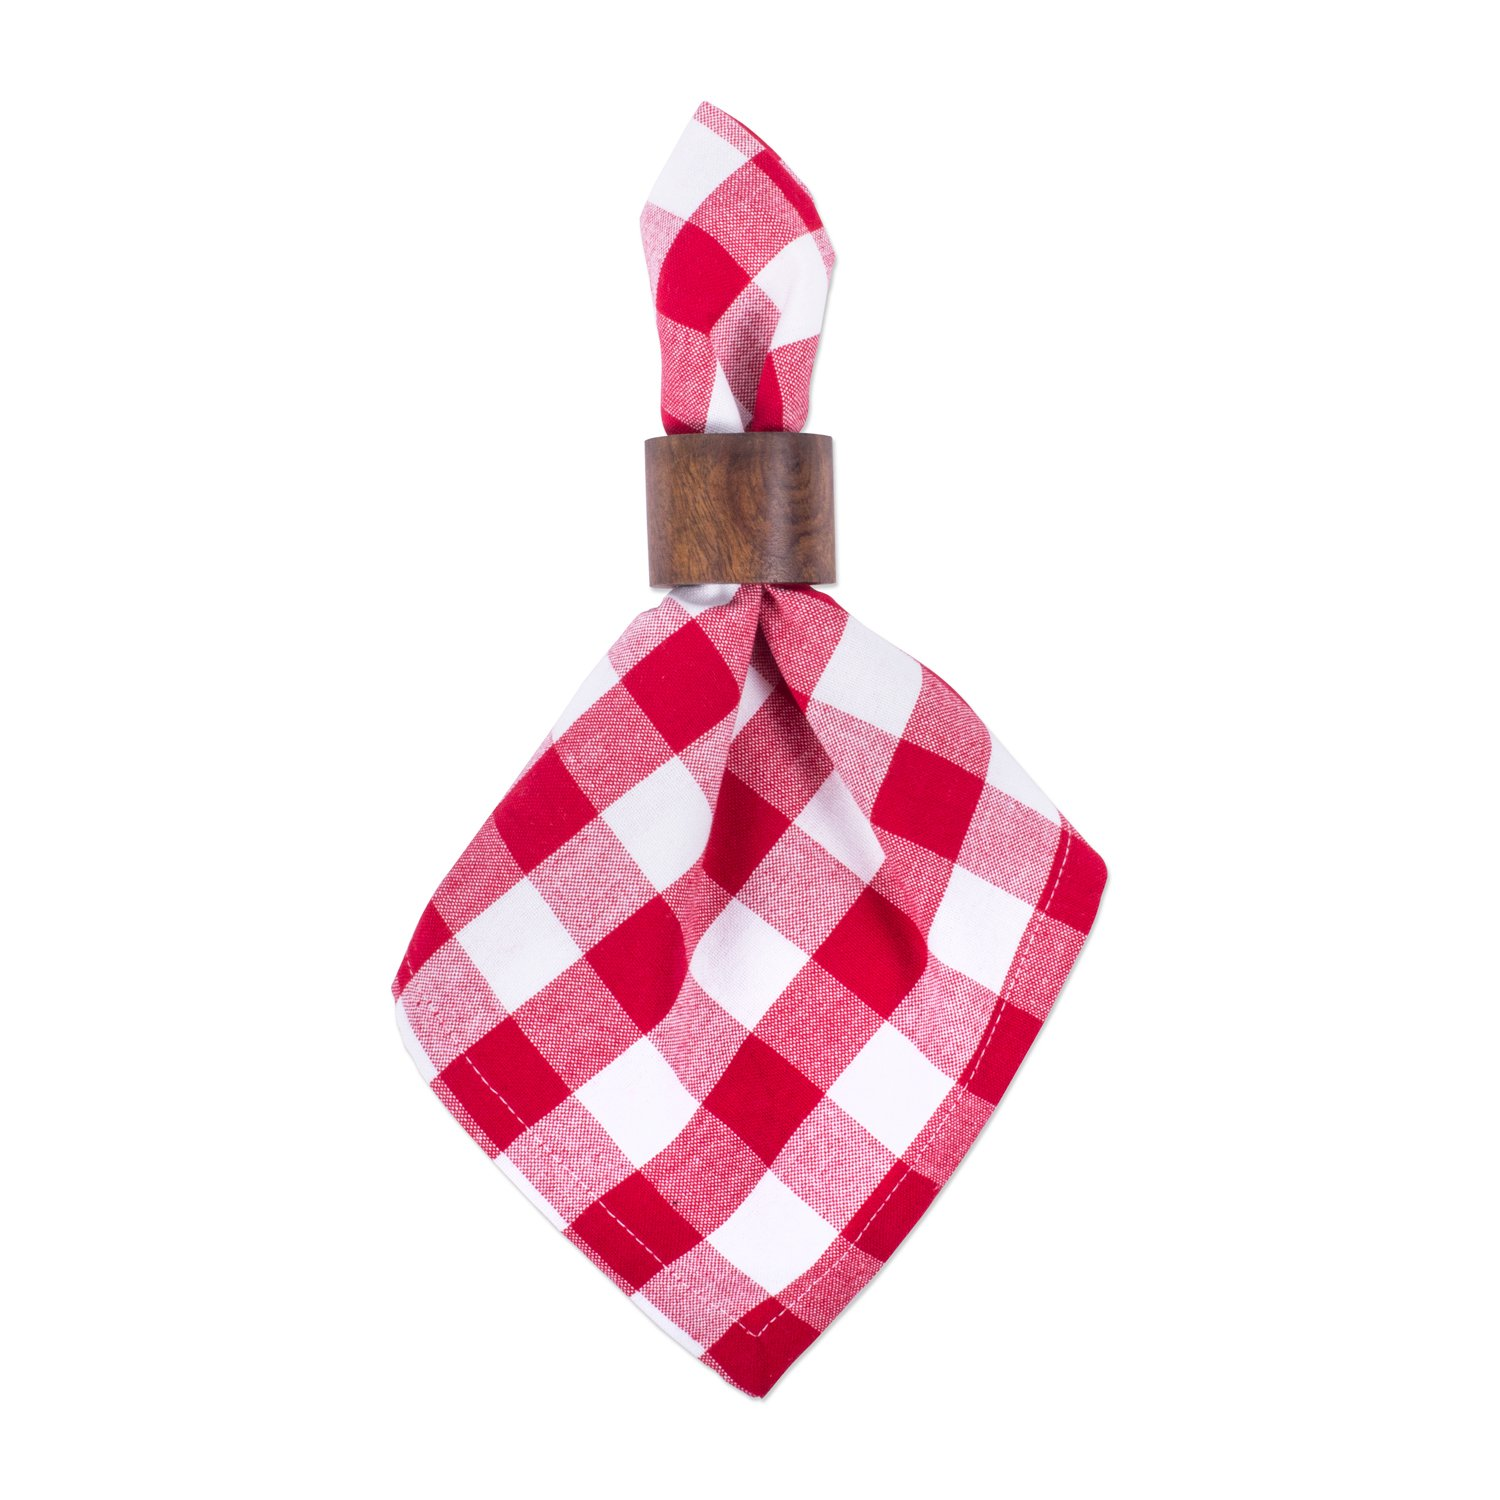 DII Oversized 20x20 Cotton Napkin, Pack of 6, Red & White Check - Perfect for Fall, Thanksgiving, Farmhouse DÃcor, Christmas, Picnics & Potlucks or Everyday Use by DII (Image #5)